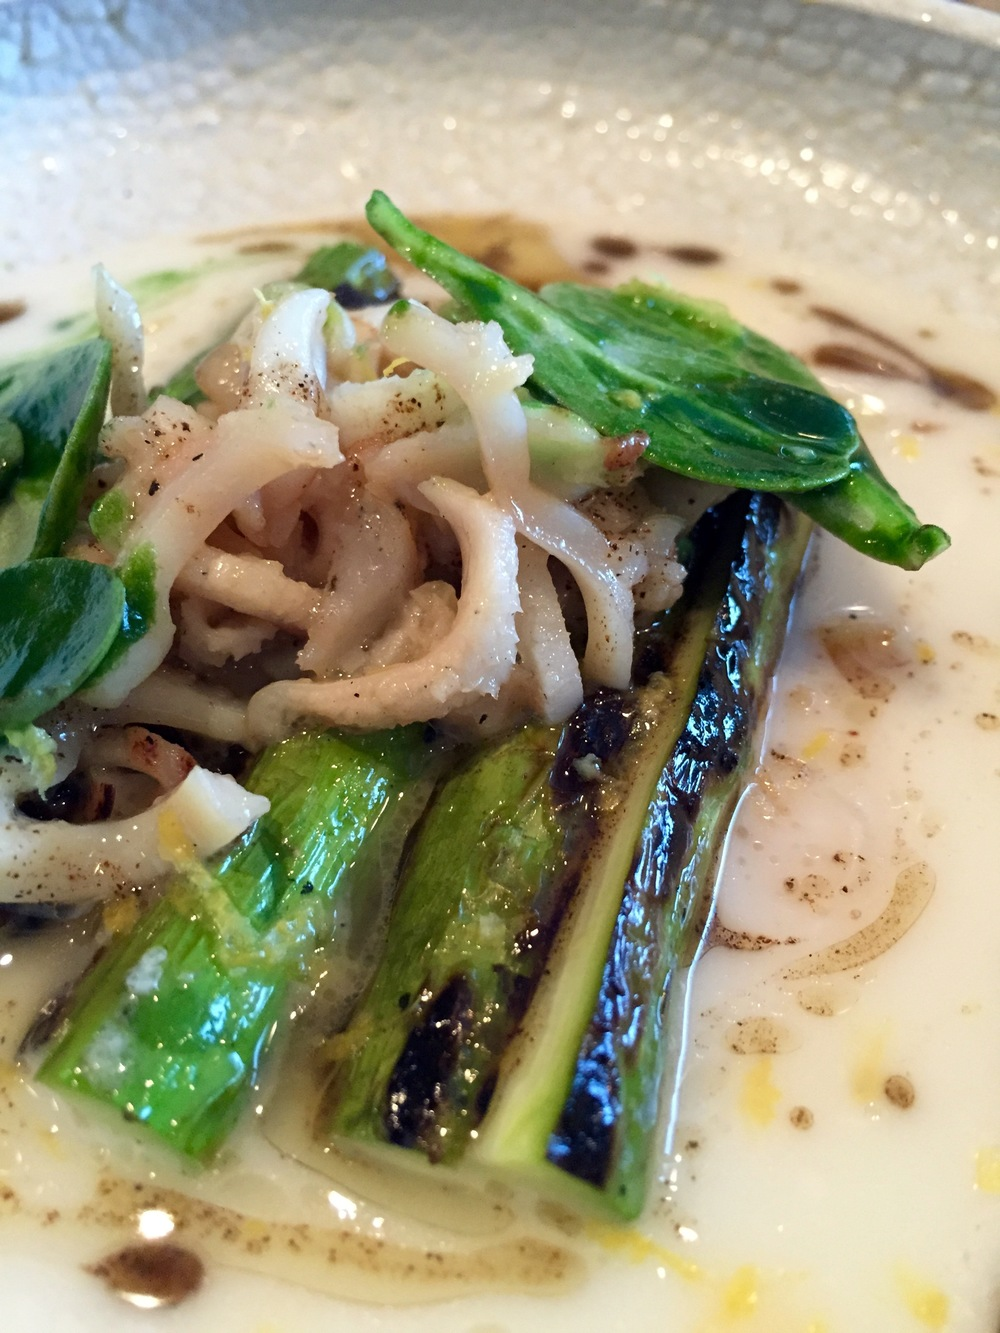 Charred California asparagus, parmesan broth, razor clams, and black pepper.